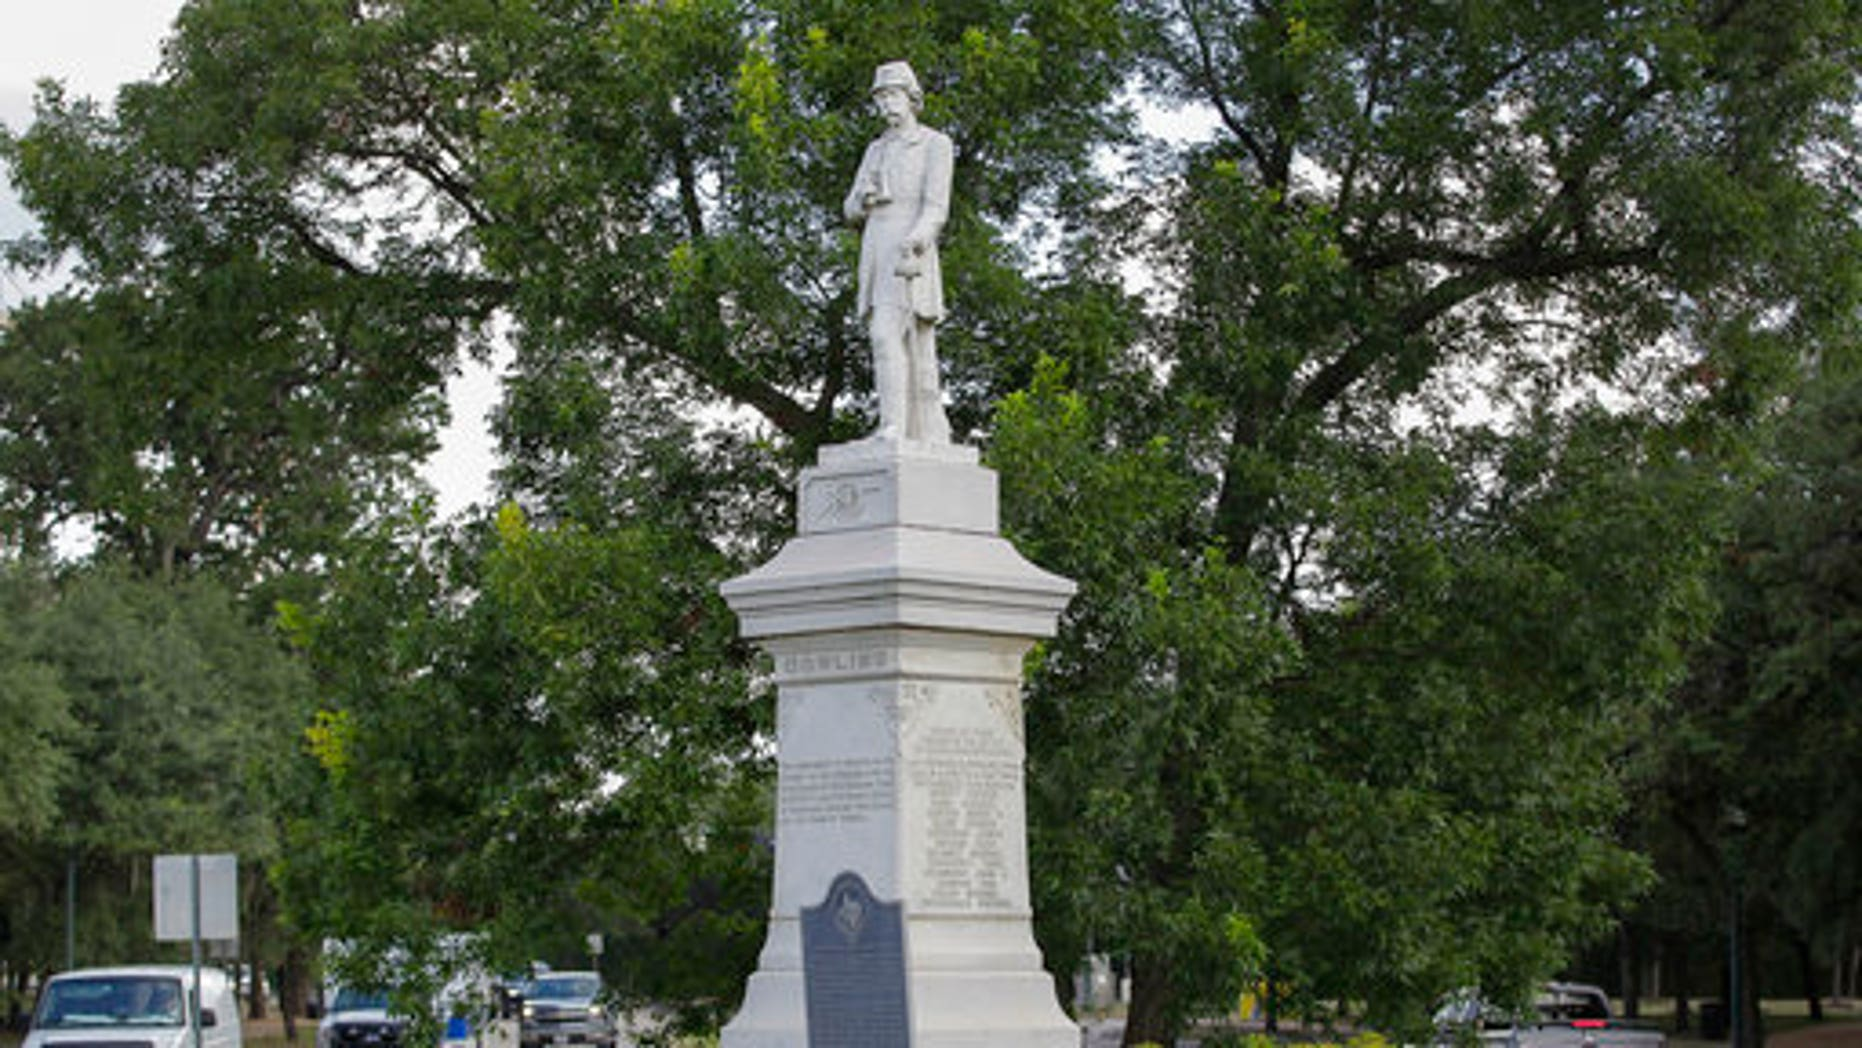 The Richard Dowling statue is shown near the entrance to Hermann Park in Houston on Monday.